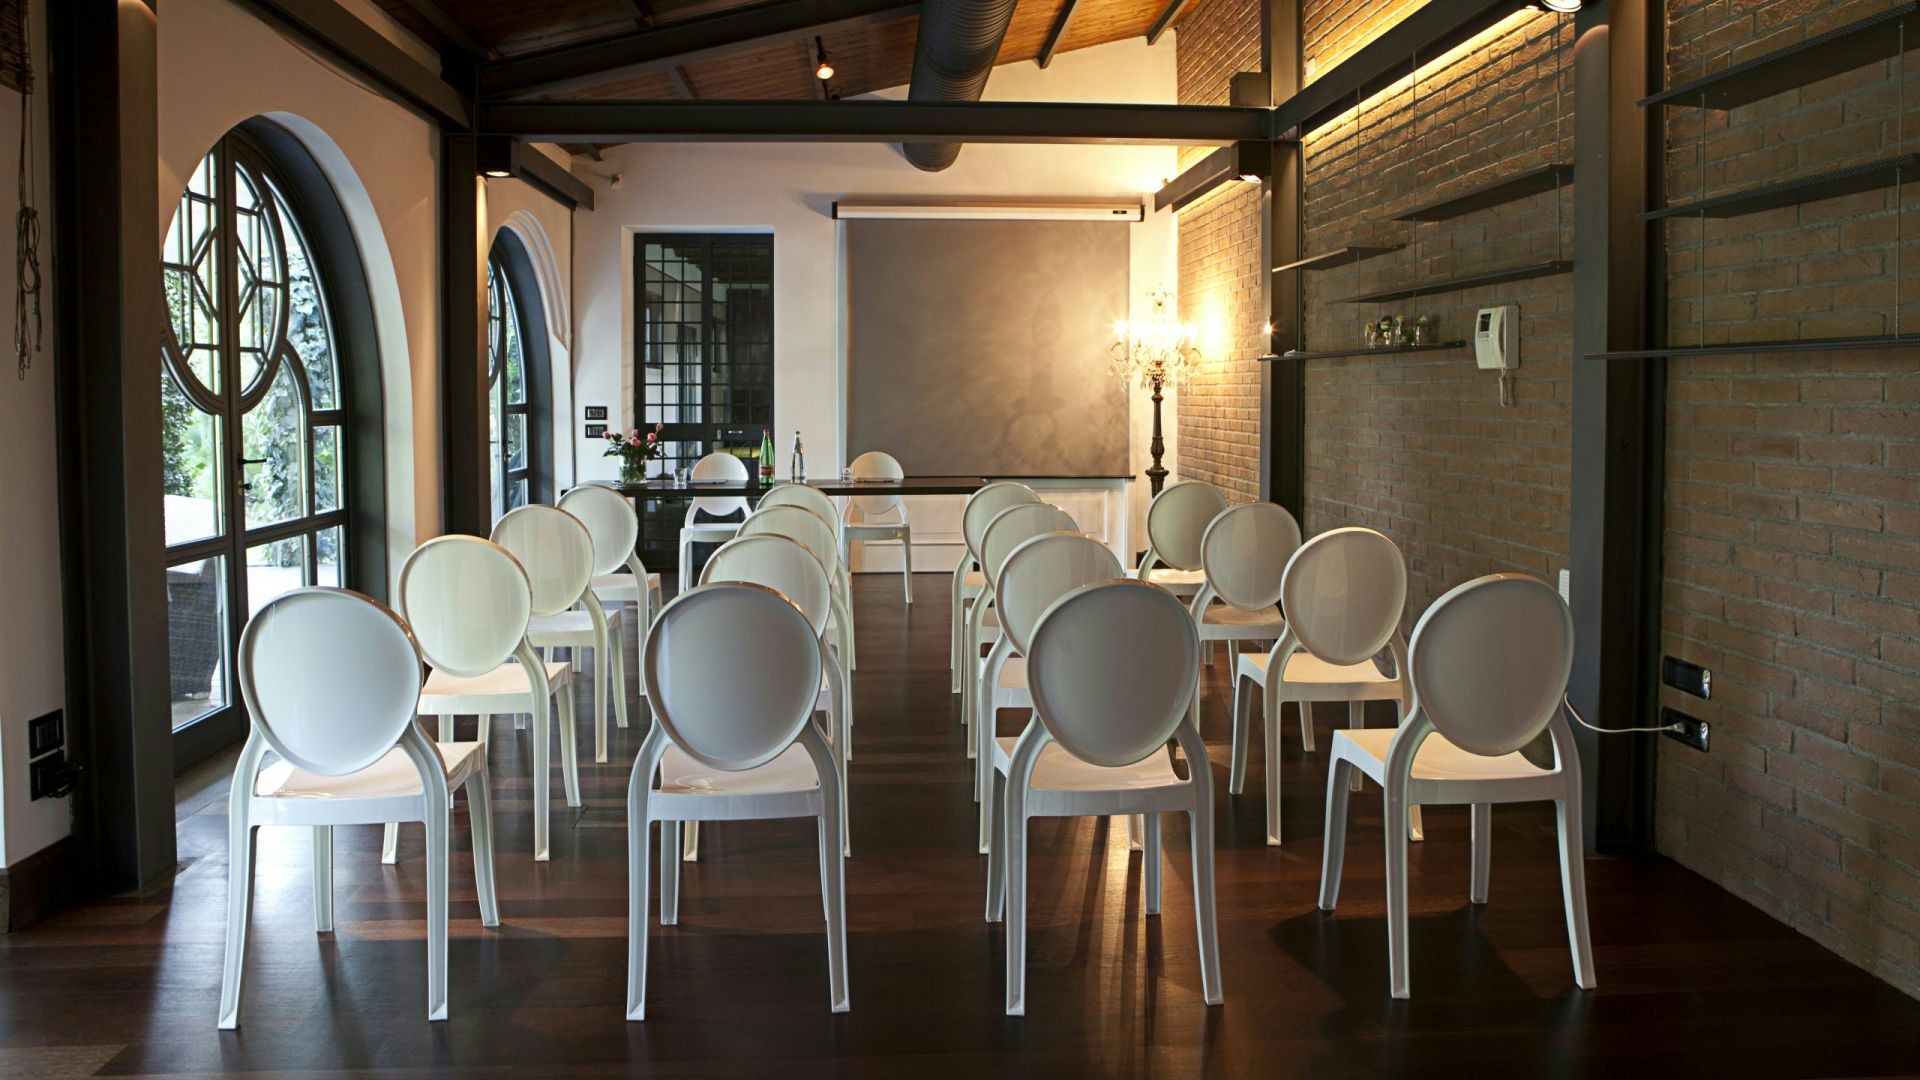 residenza-lavernale-roma-meeting-room-2